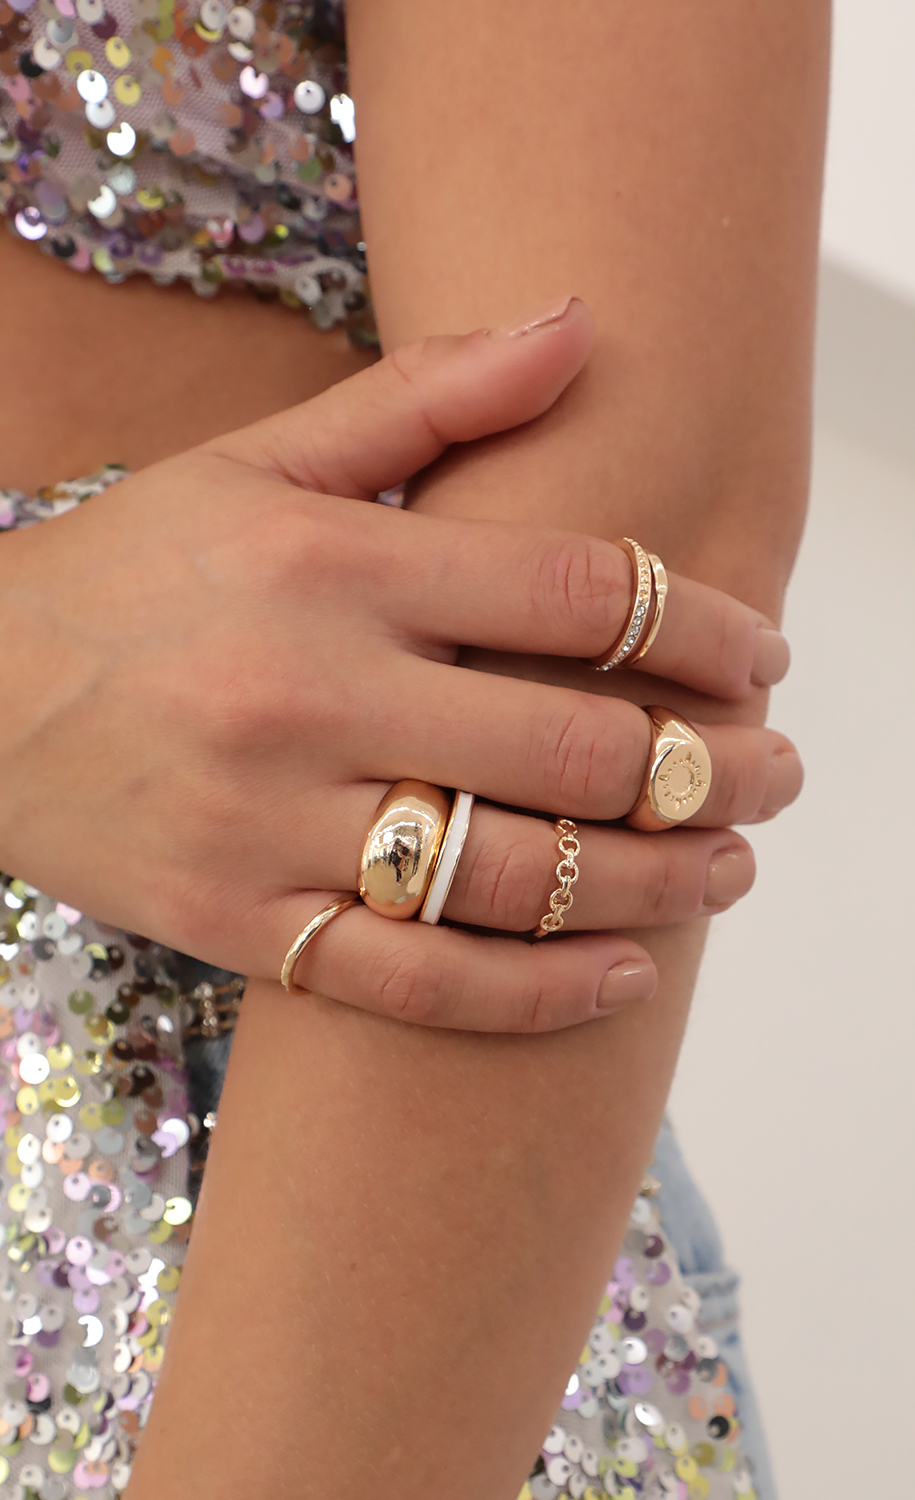 7 Piece Ring Set in Gold